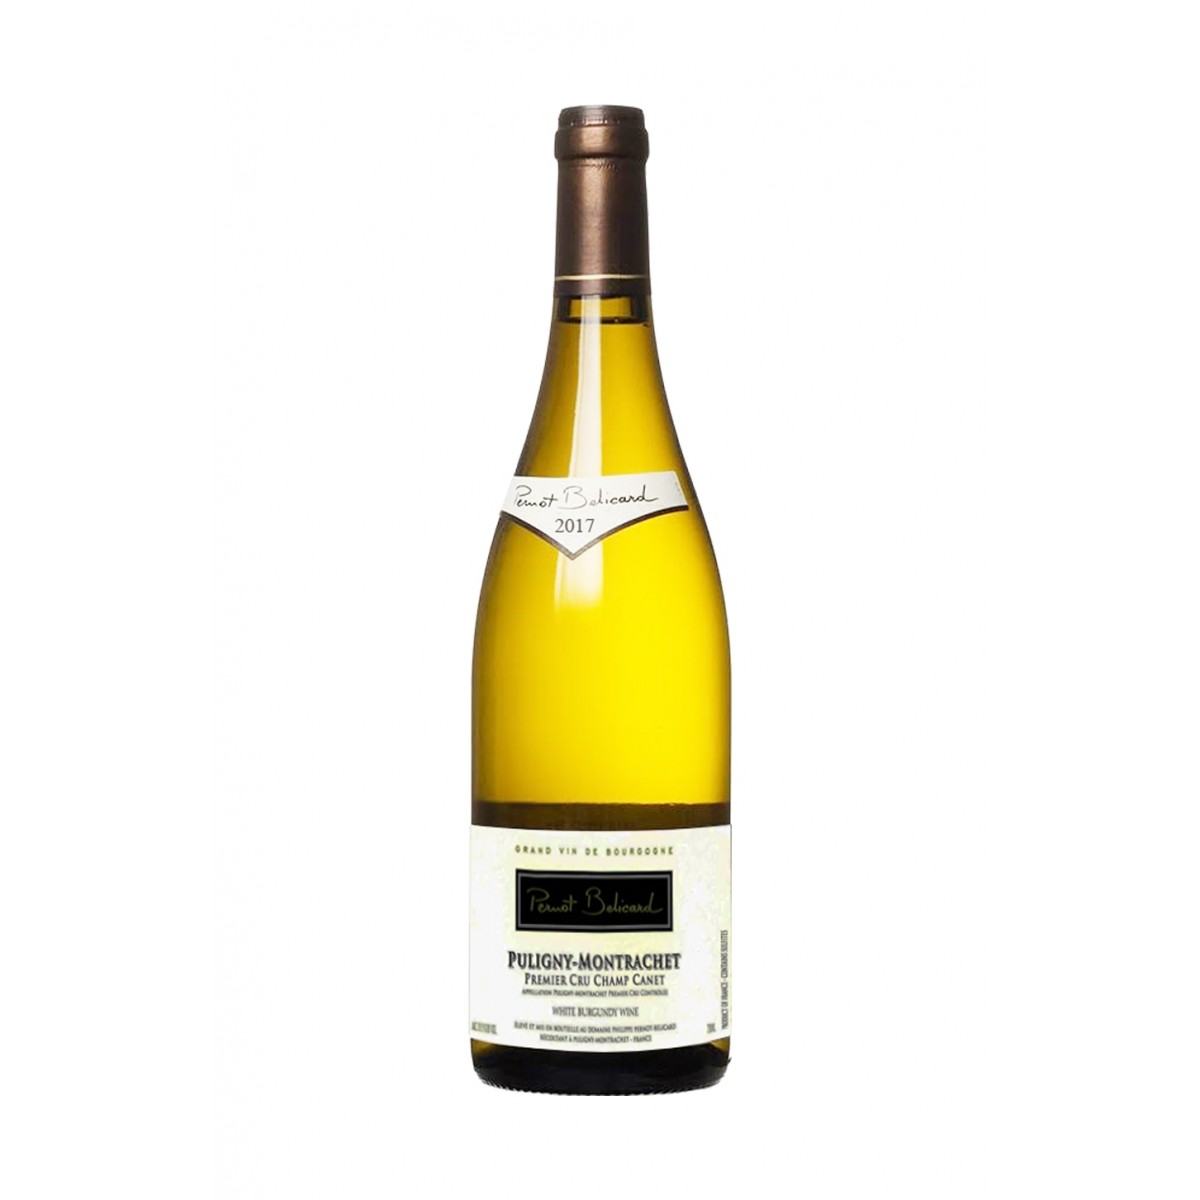 Puligny Montrachet 1er Cru Champ Canet 2017 - Domaine Pernot Belicard